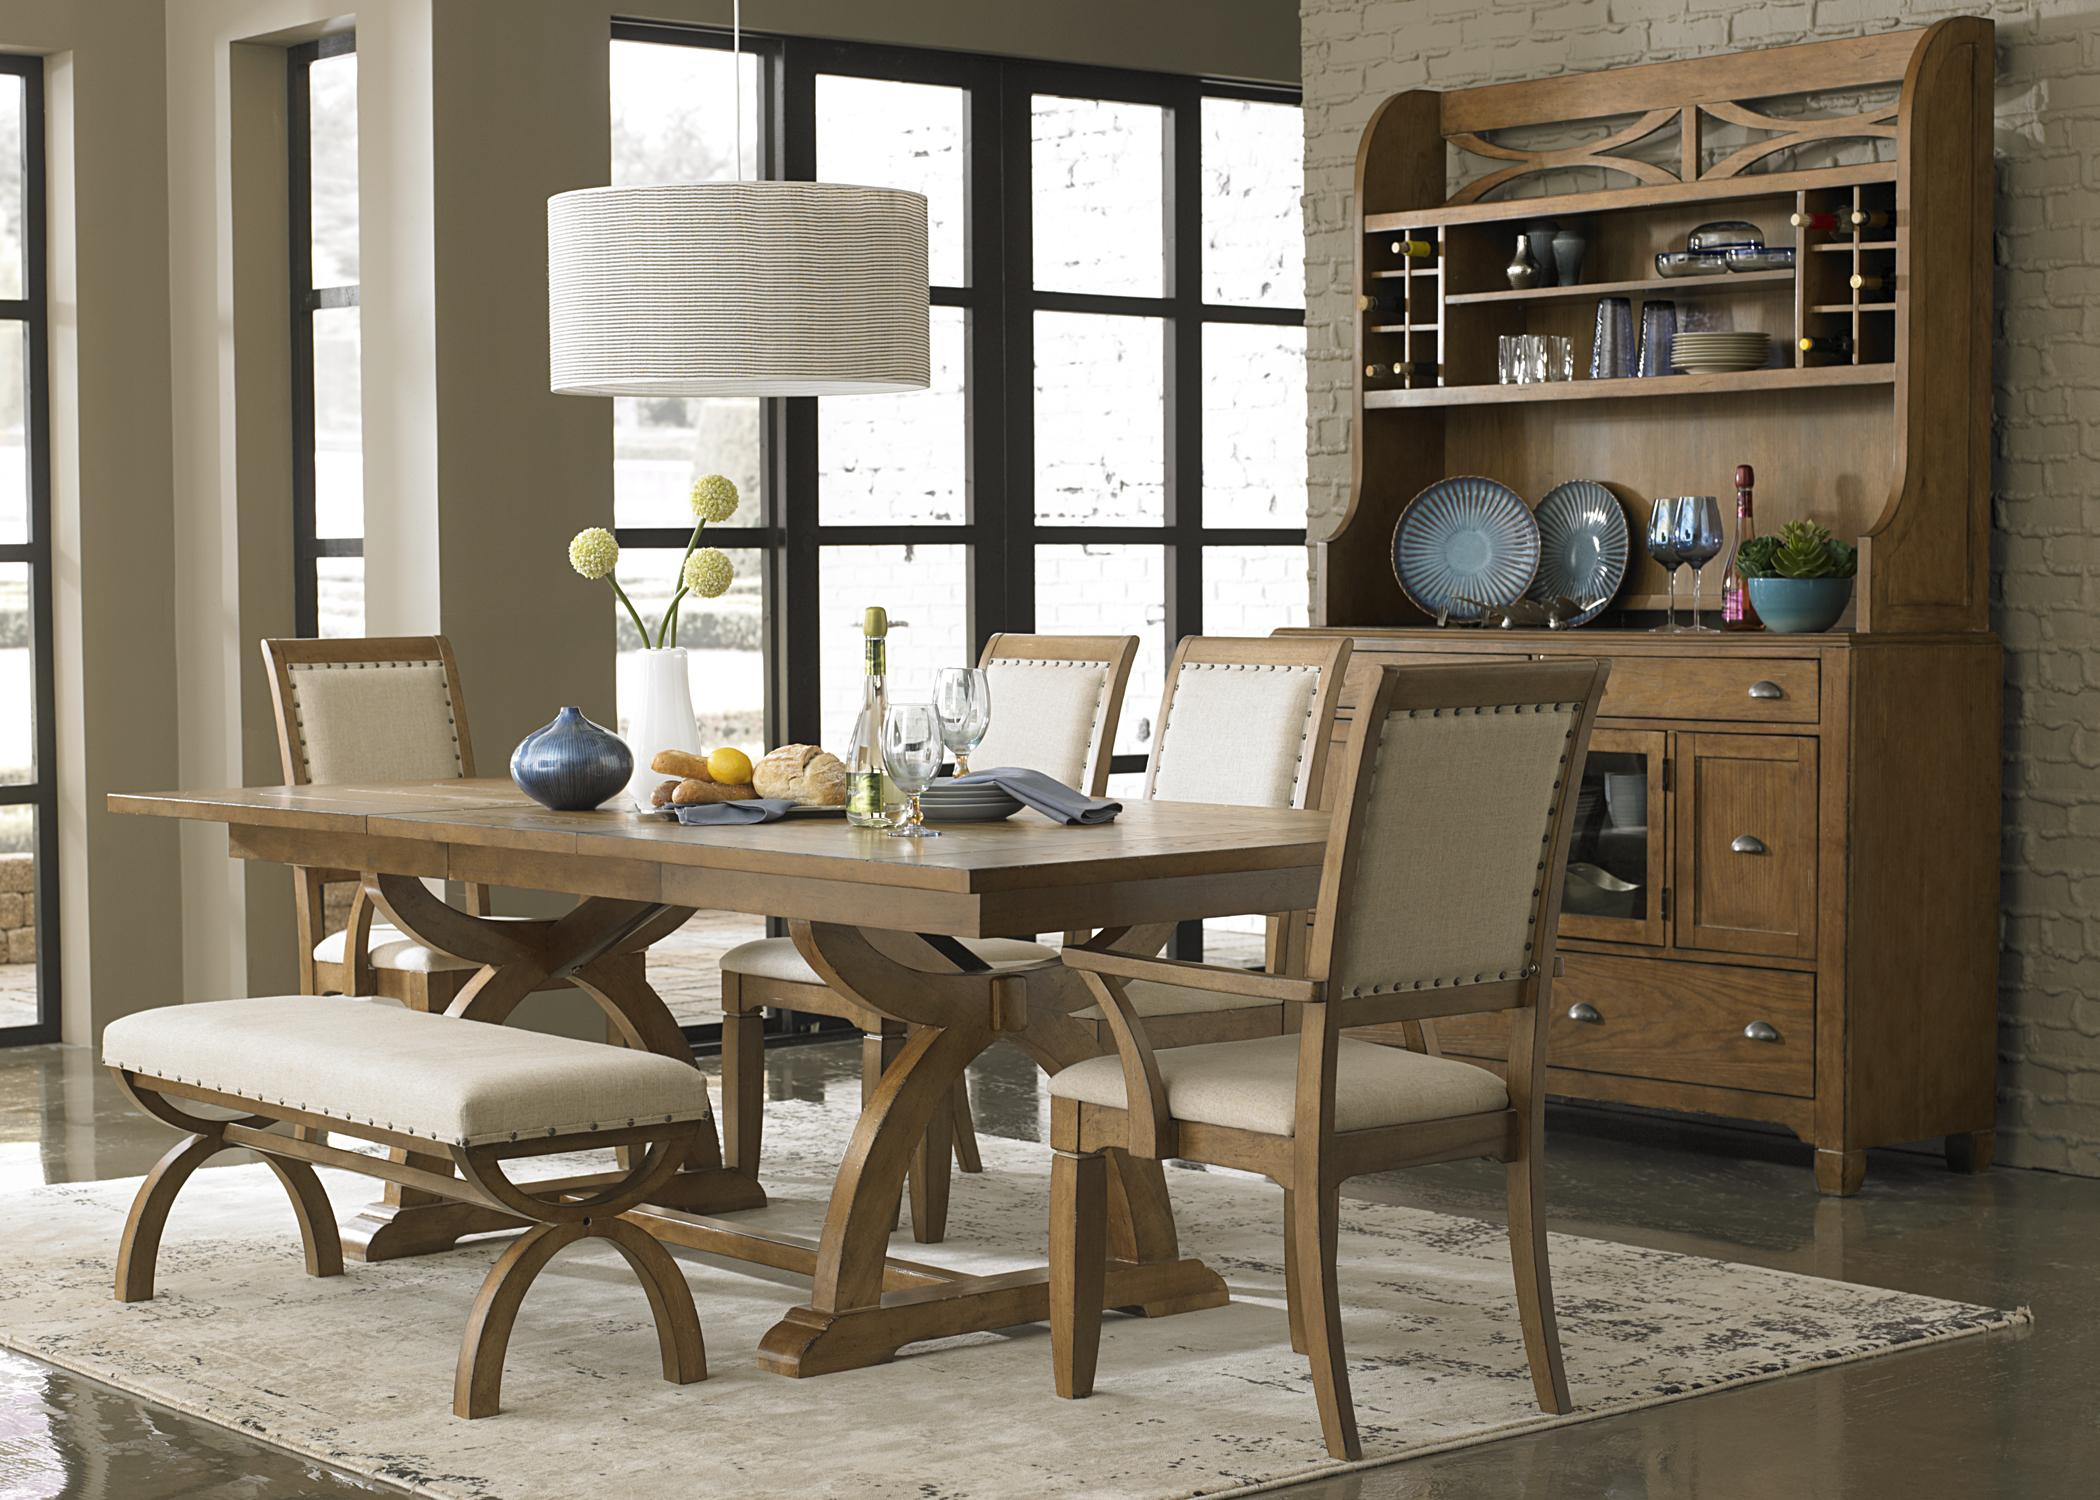 Liberty Furniture Town U0026 Country 7 Piece Trestle Table Set With 4  Upholstered Side Chairs U0026 2 Upholstered Arm Chairs   Westrich Furniture U0026  Appliances ...